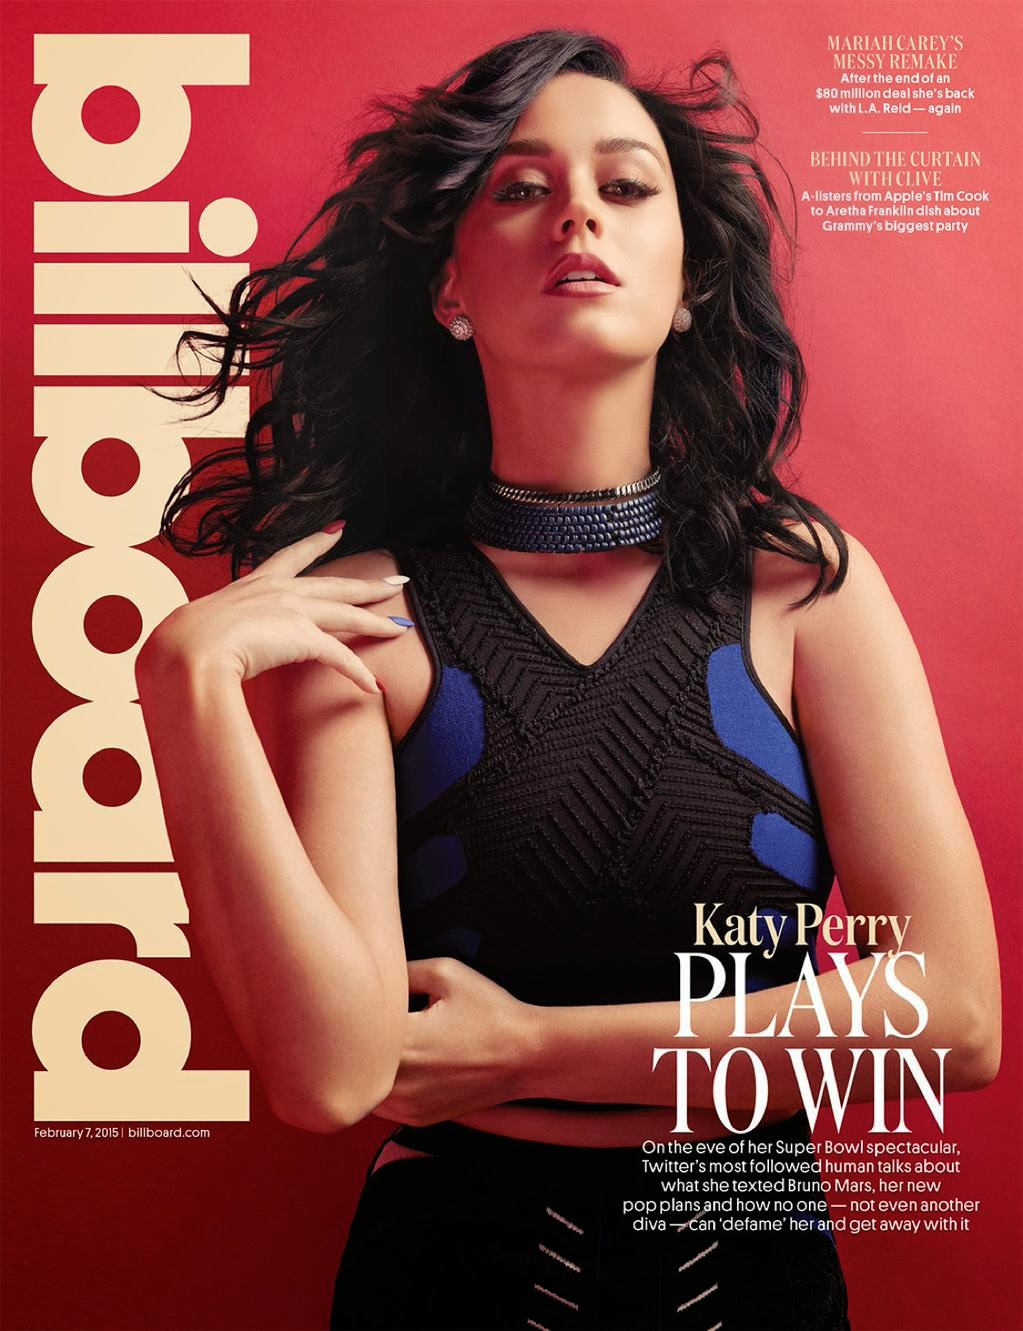 Singer, Songwriter, Actress: Katy Perry for Billboard